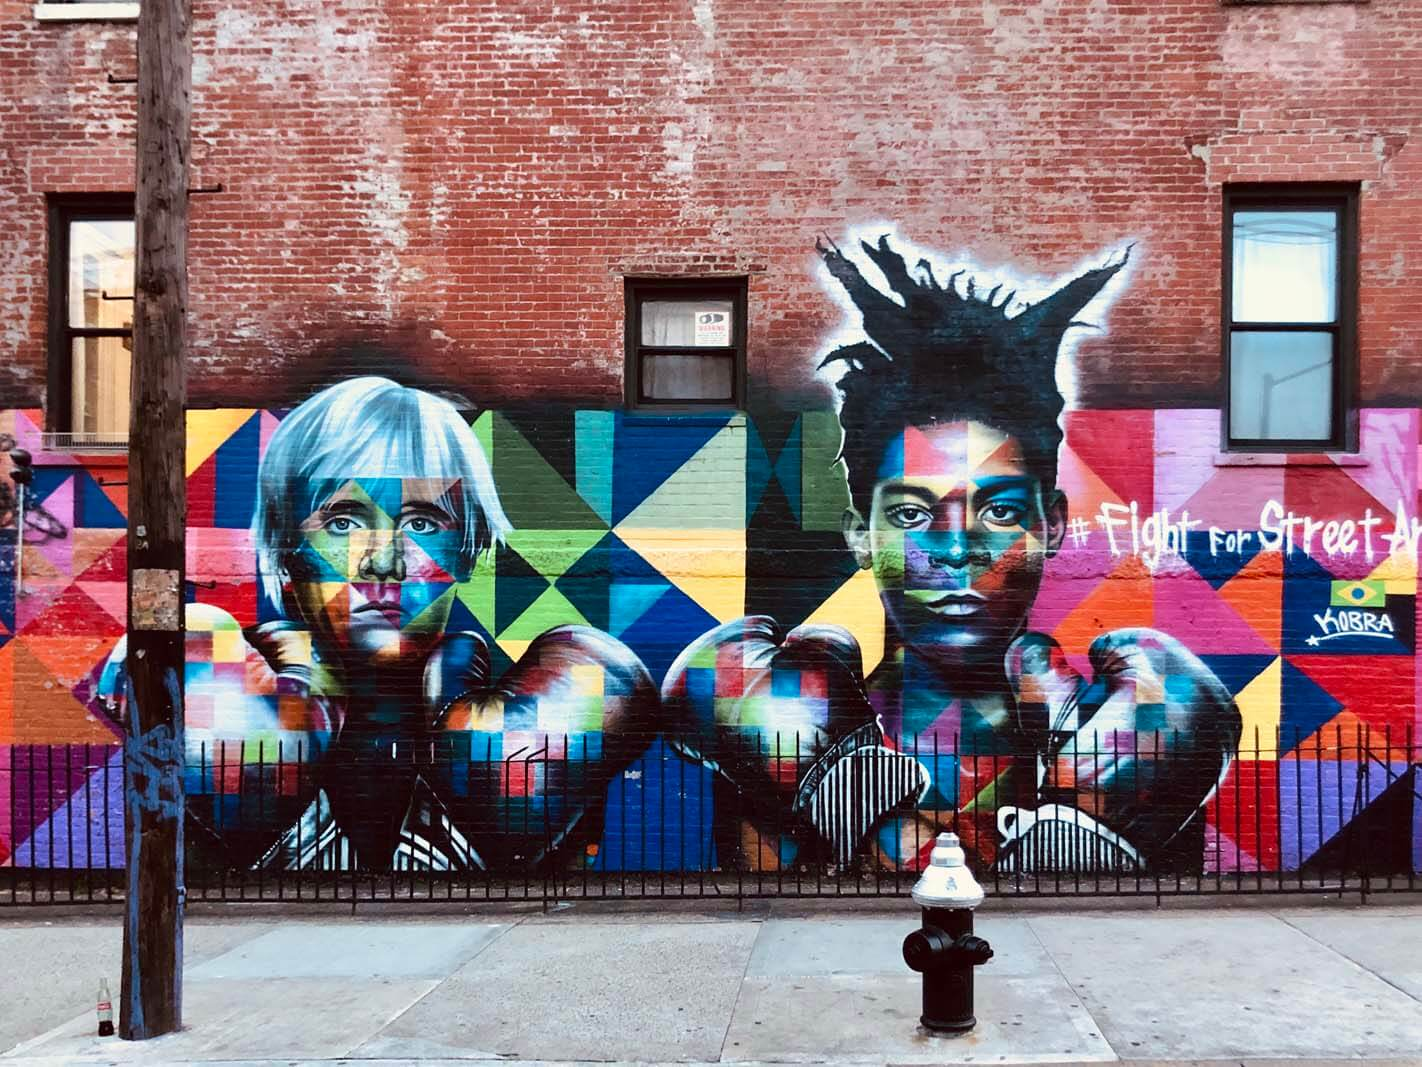 Jean-Michel Basquiat and Andy Warhol by KOBRA in Williamsburg Brooklyn off of Bedford